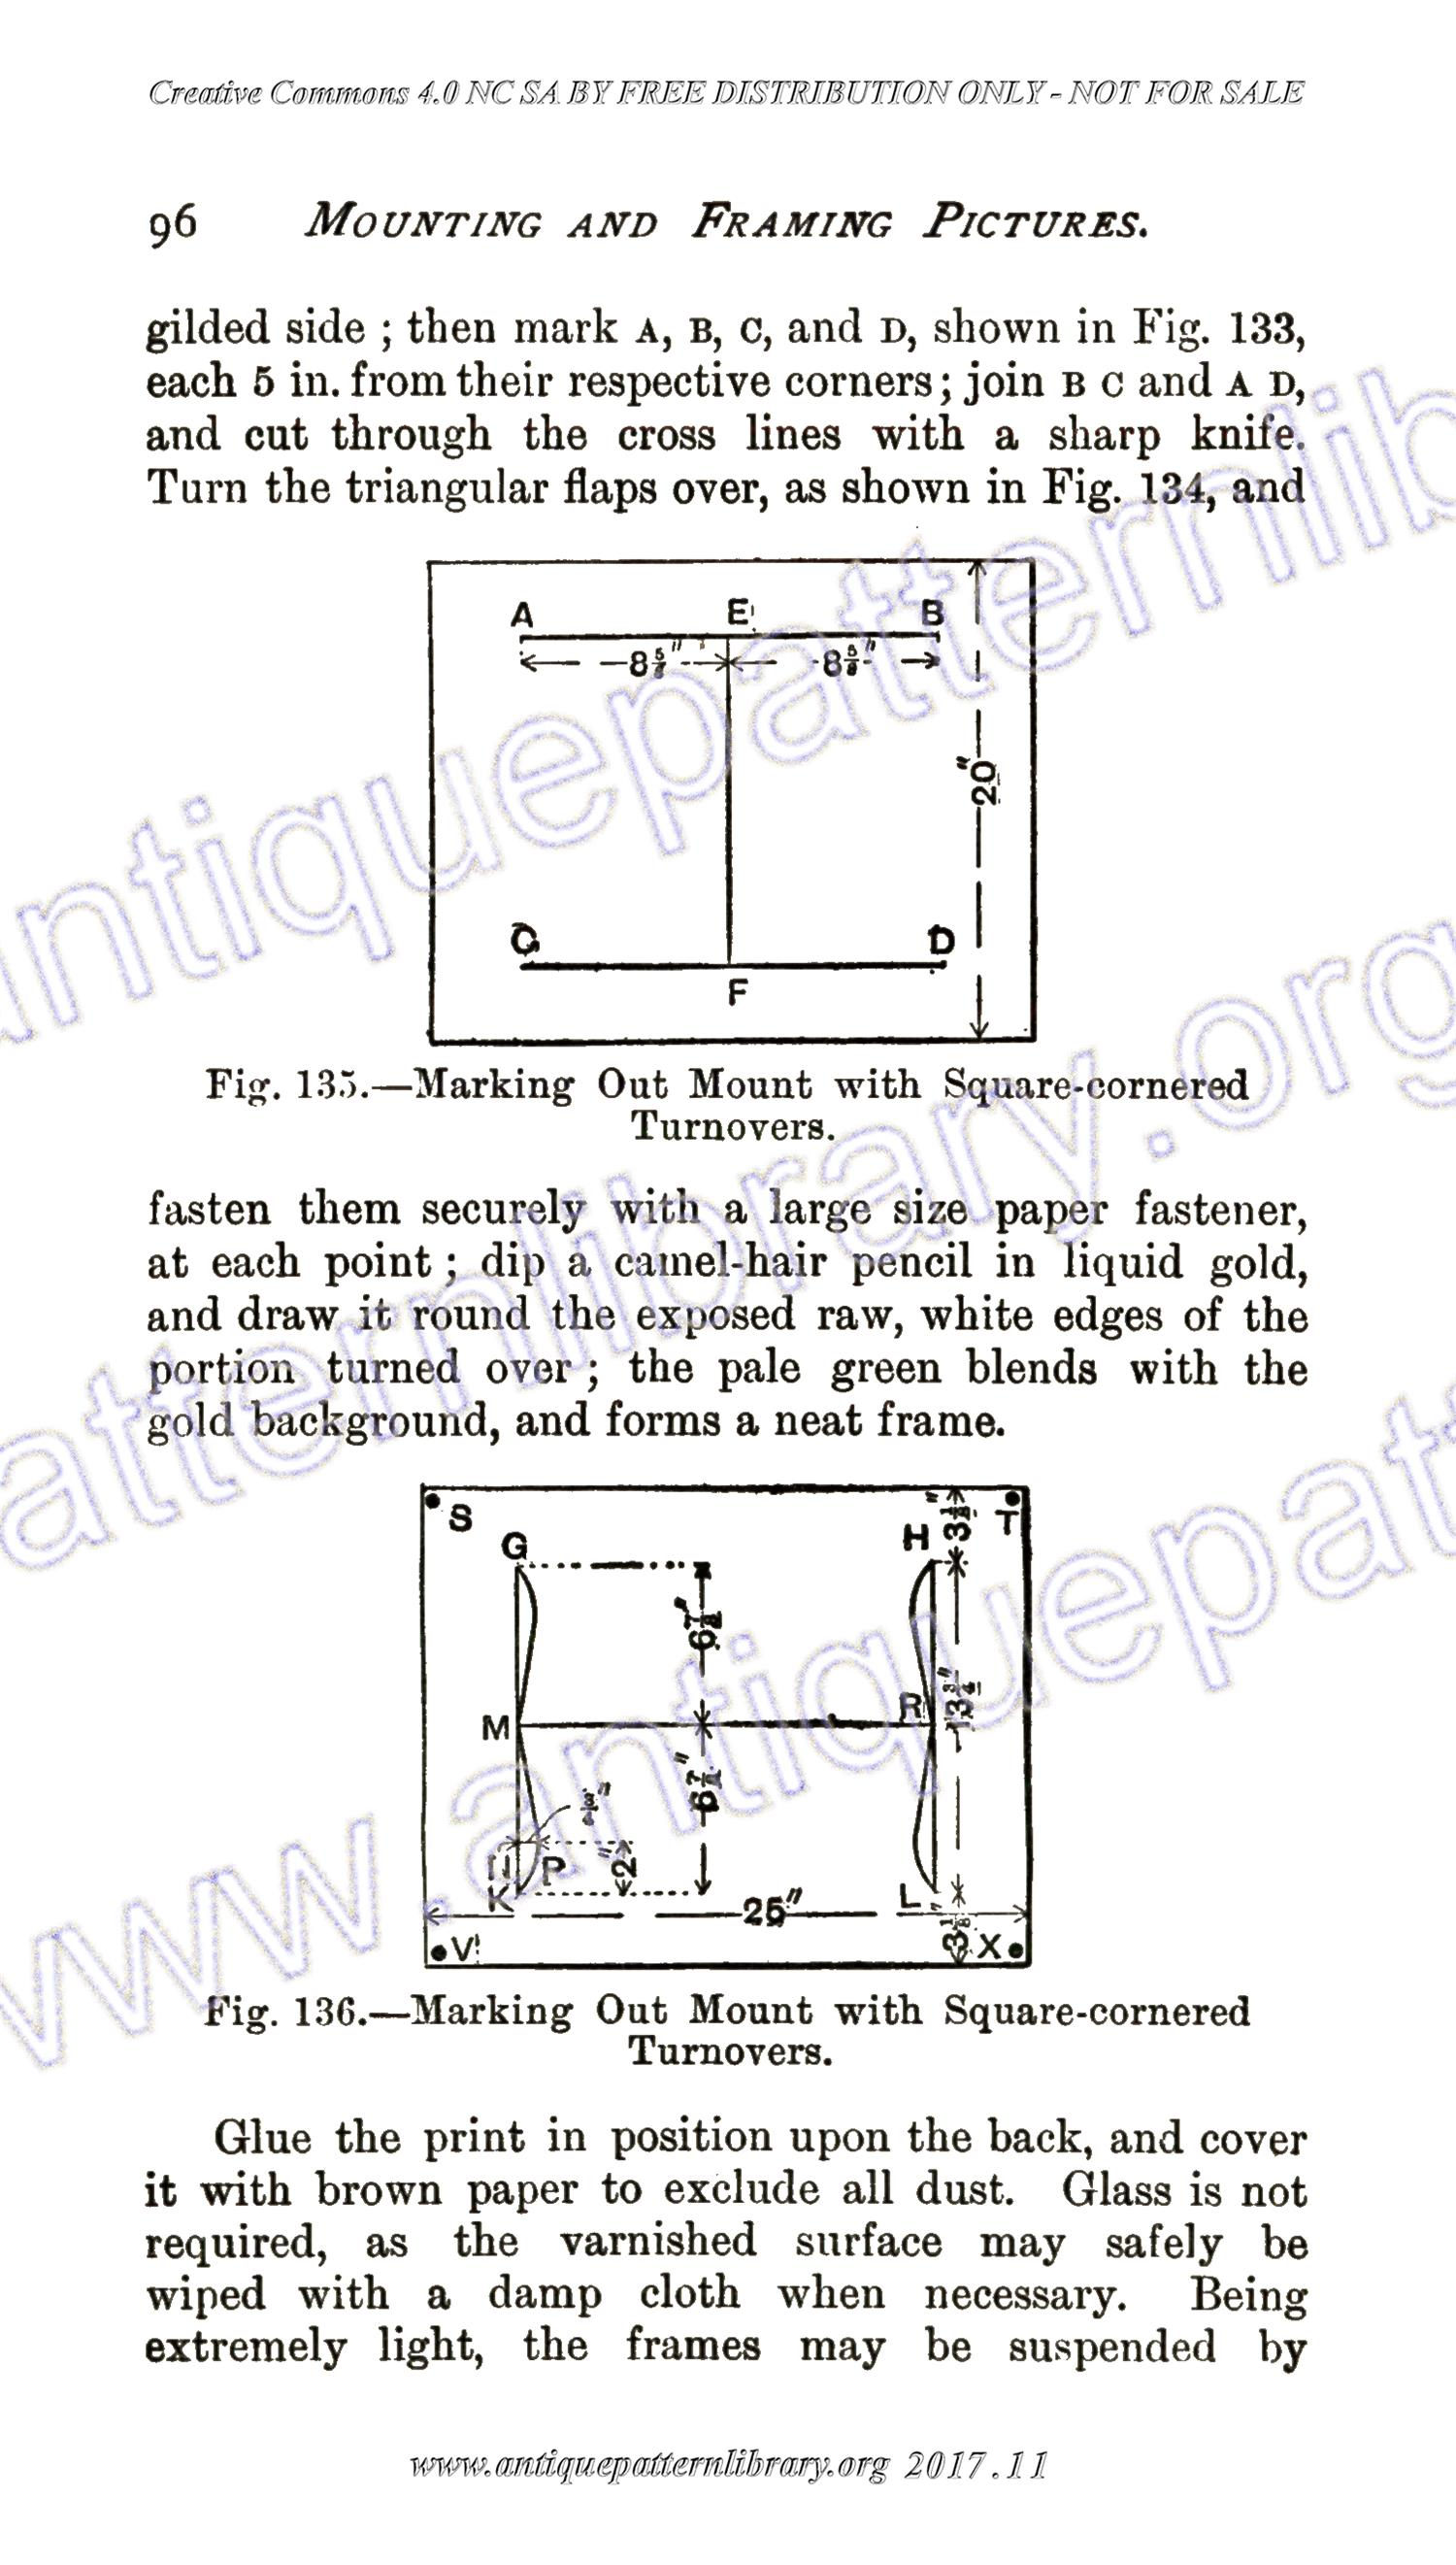 B-SW032 Mounting and Framing Pictures